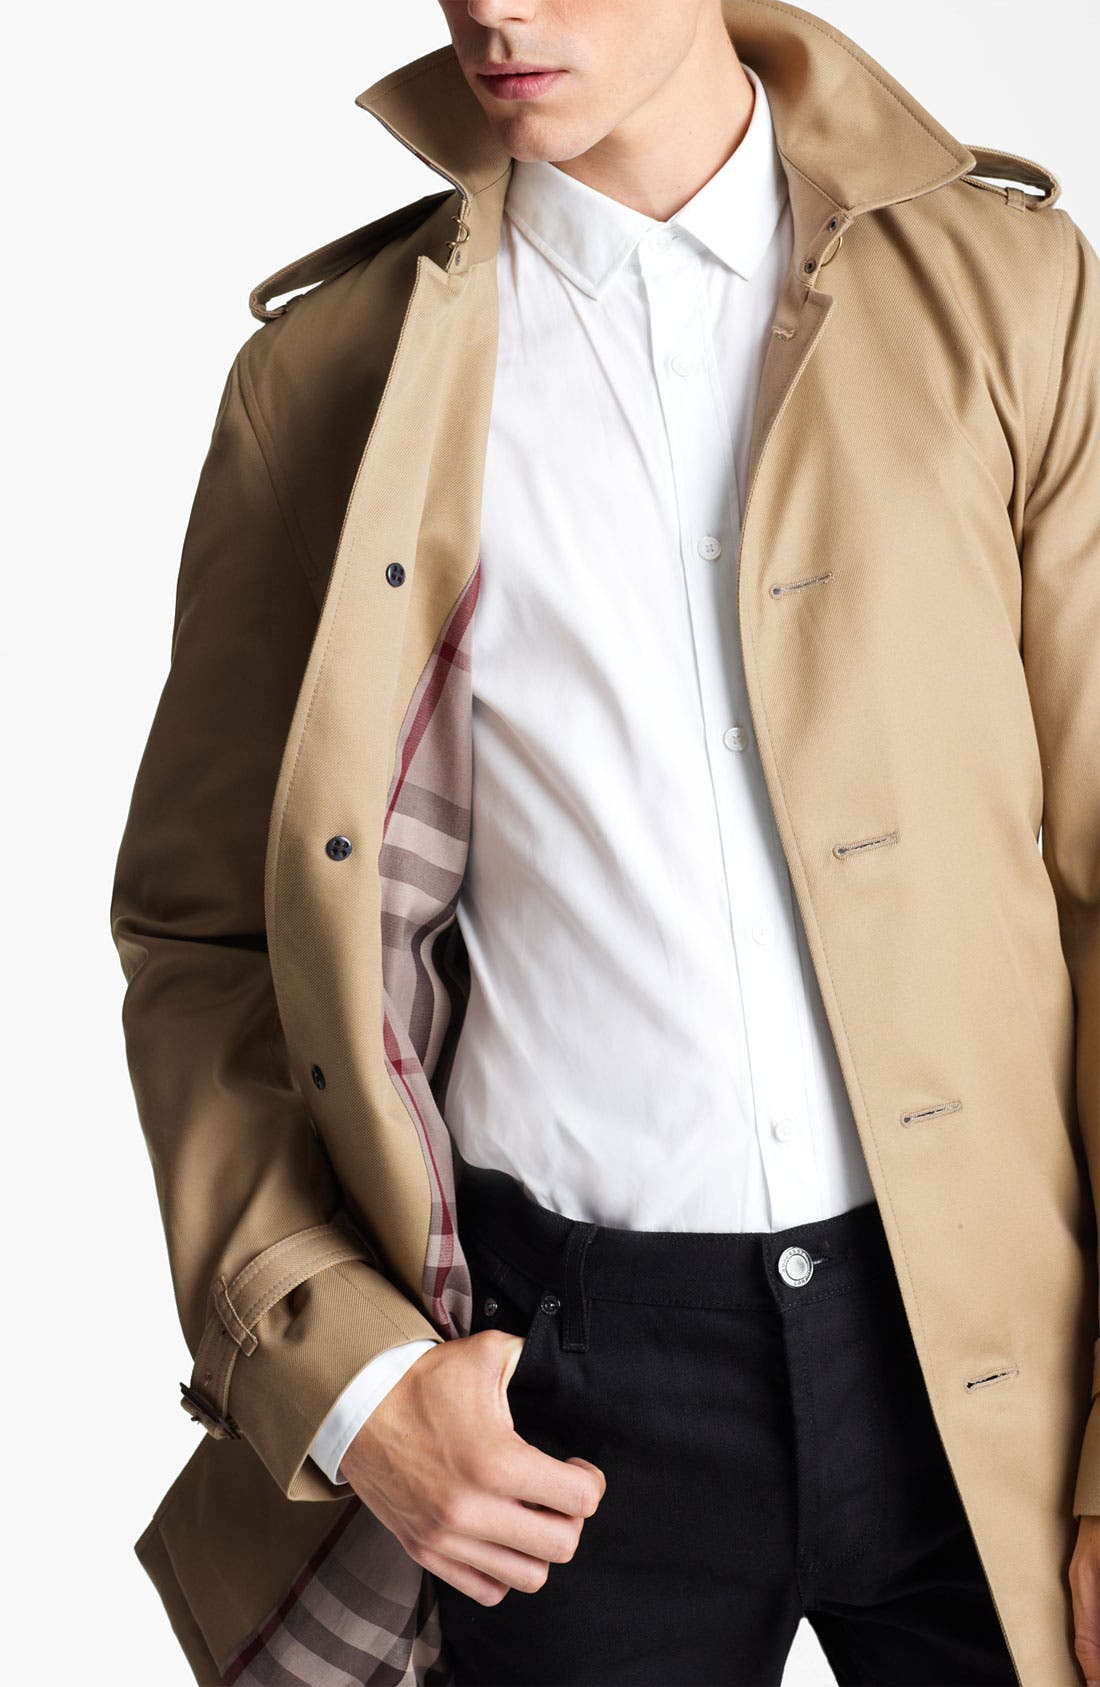 London 'Britton' Single Breasted Trench Coat,                             Alternate thumbnail 2, color,                             250